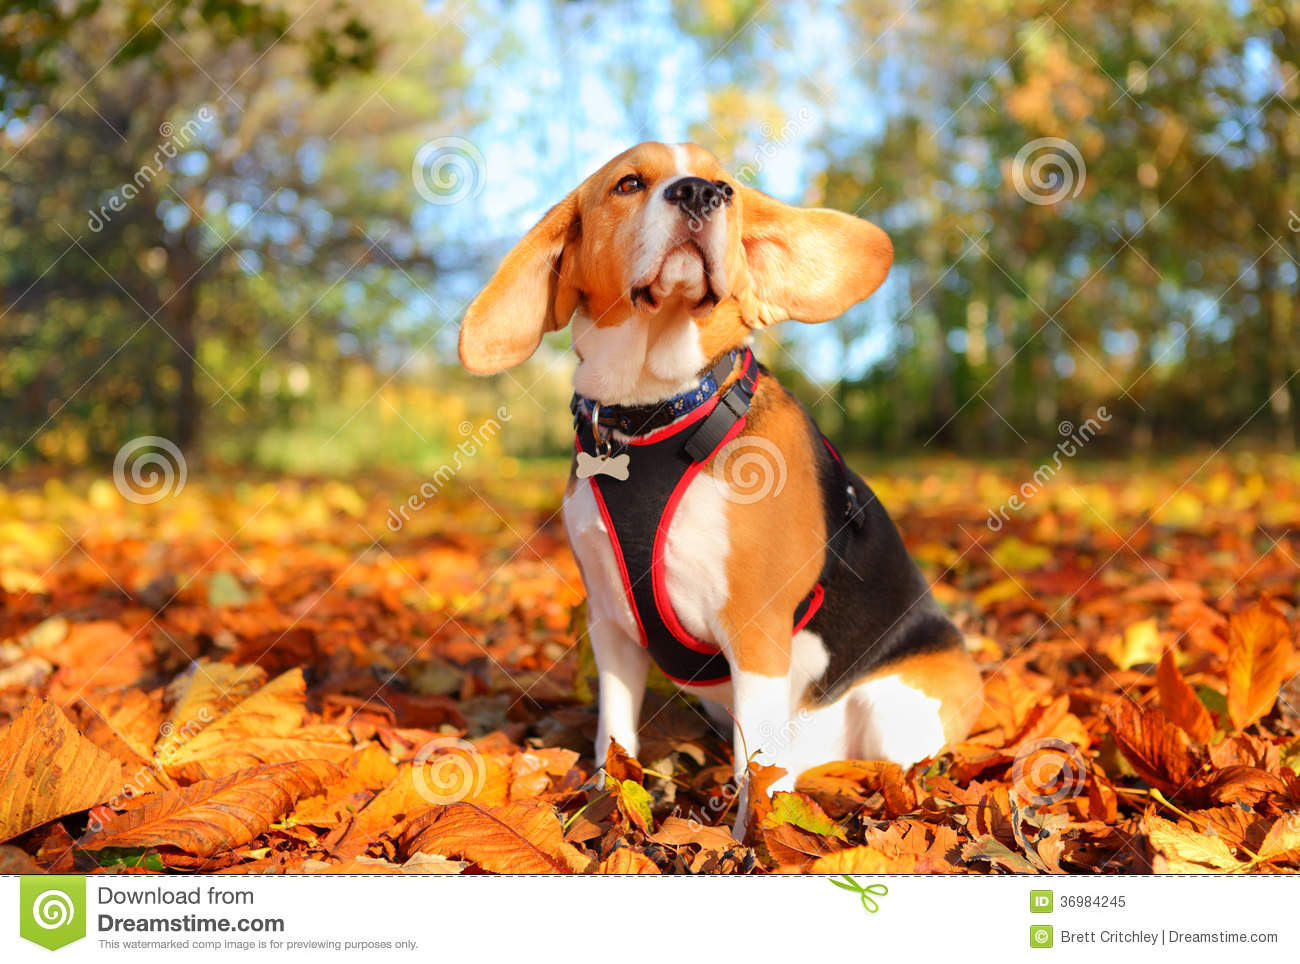 Fall Leaves Dancing Wallpaper Fall Beagle Dog Royalty Free Stock Photo Image 36984245